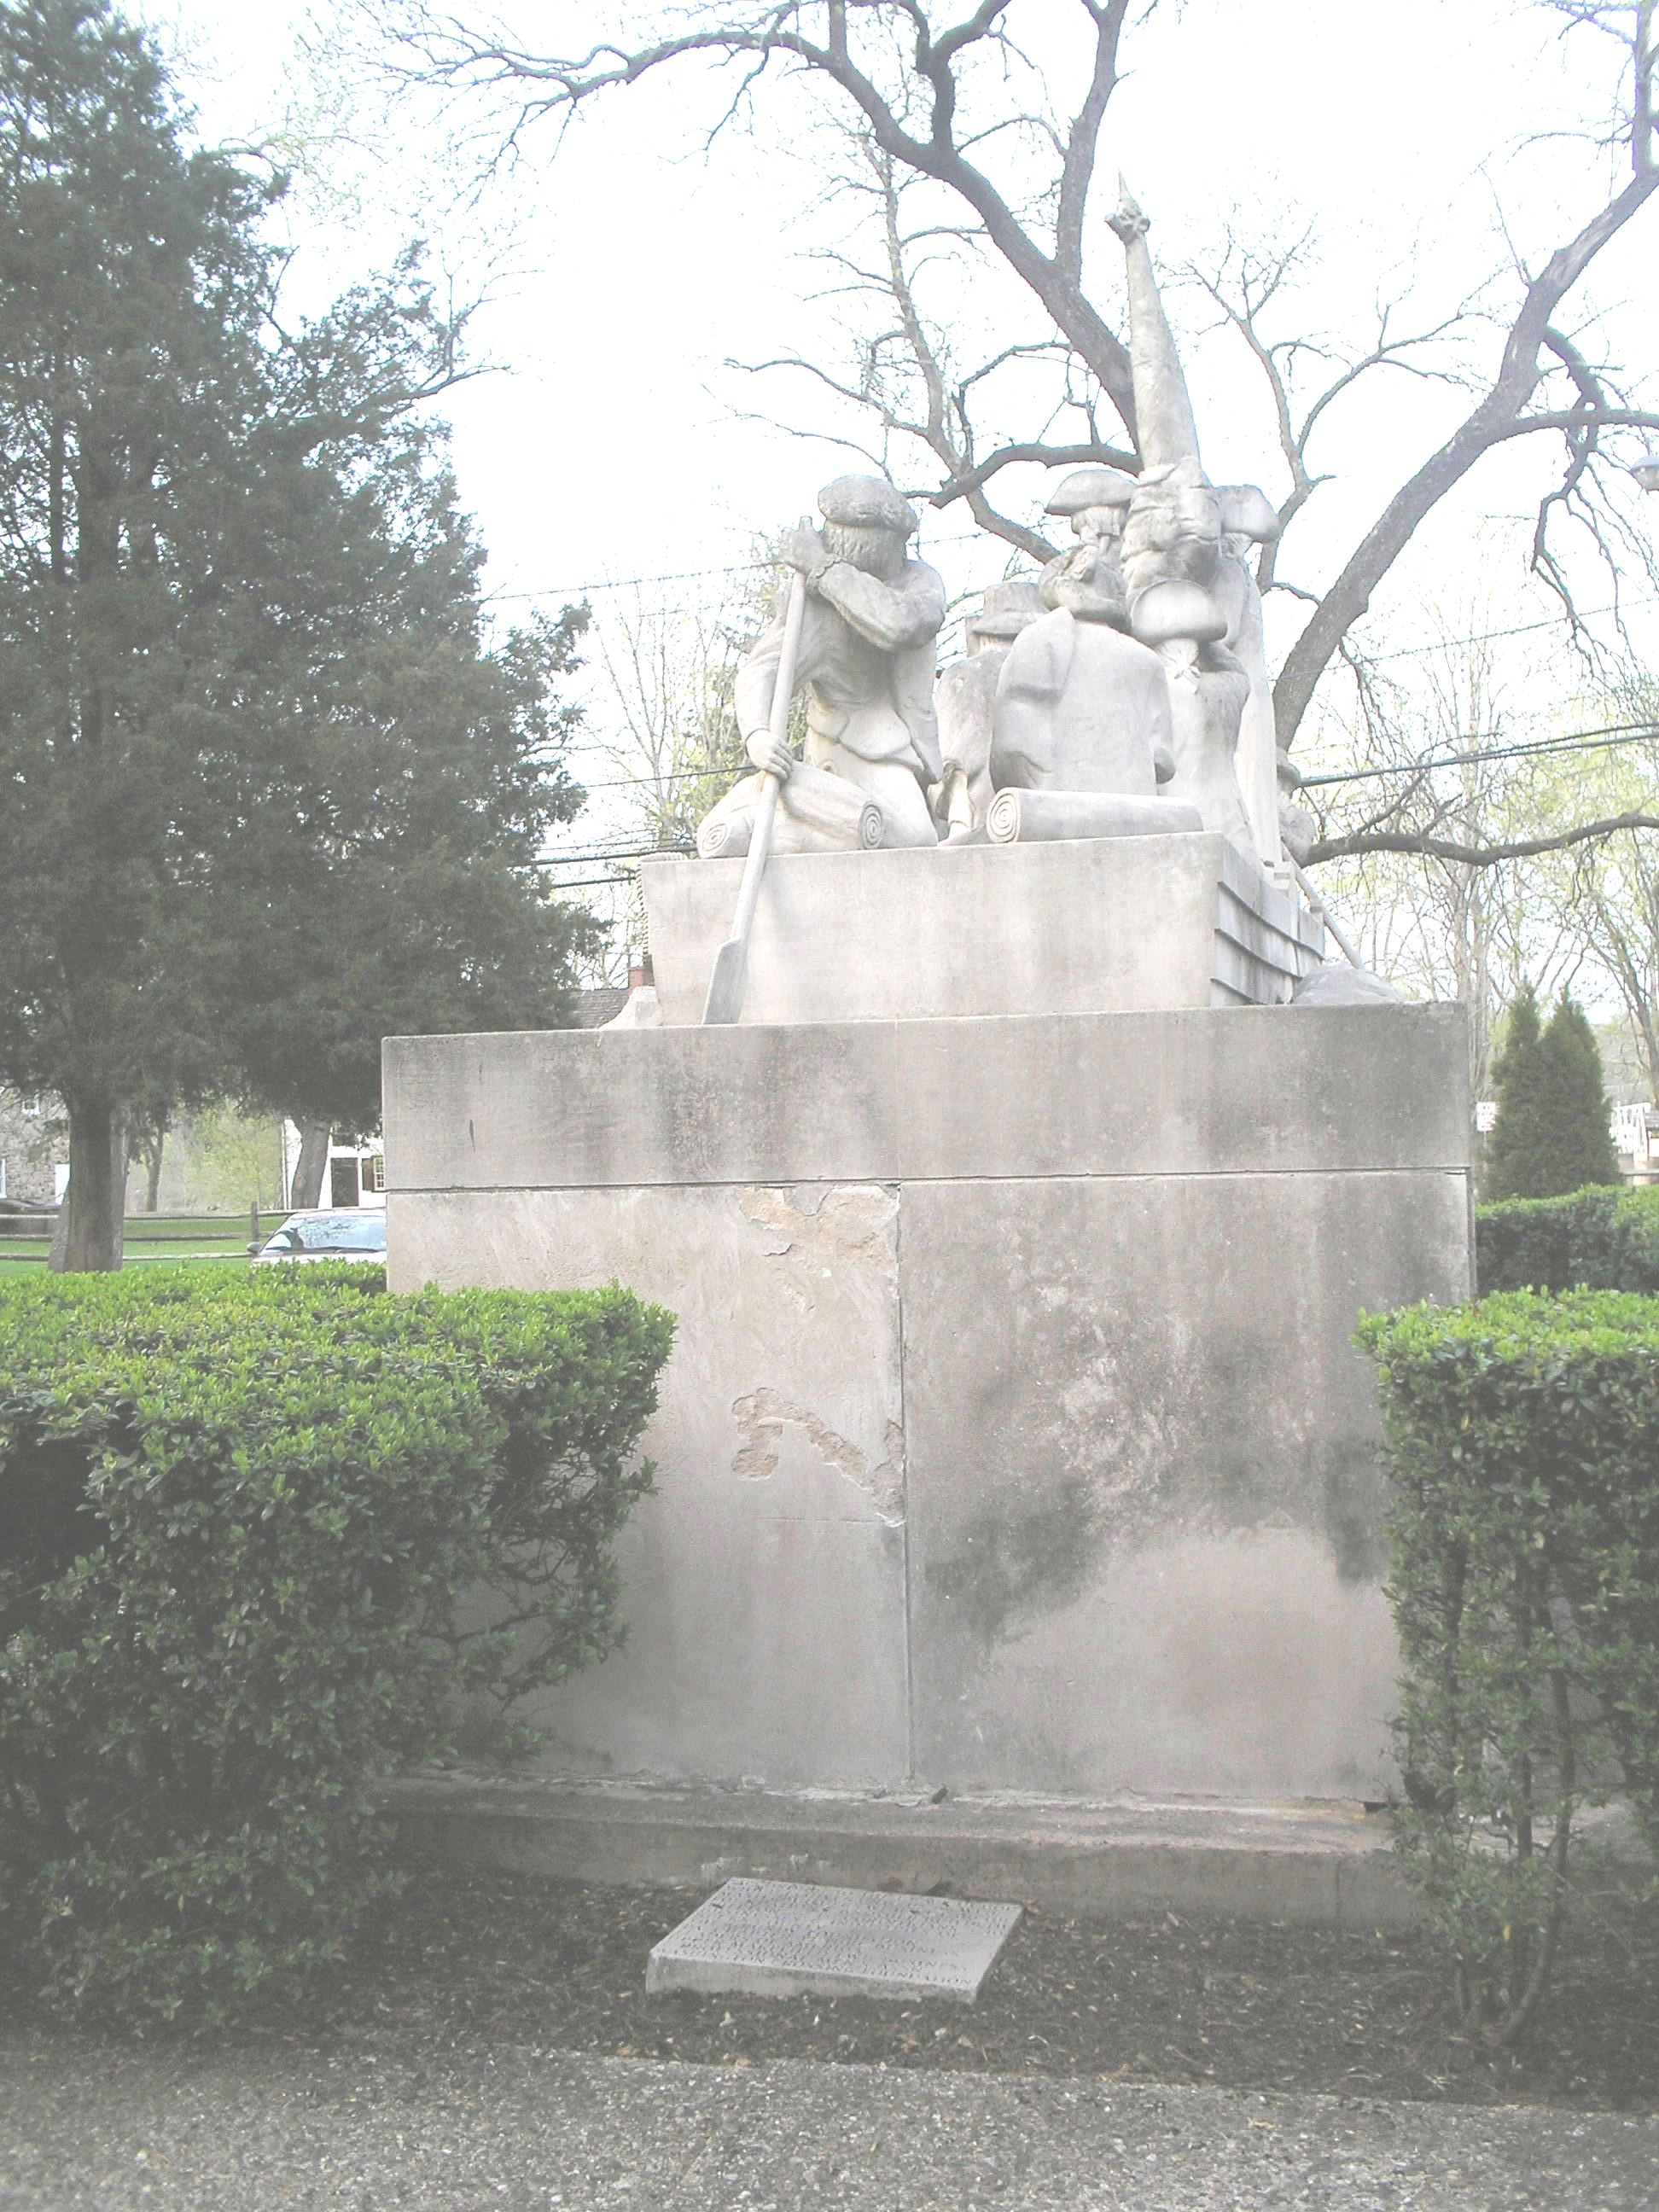 Rear of Monument with Credit Marker